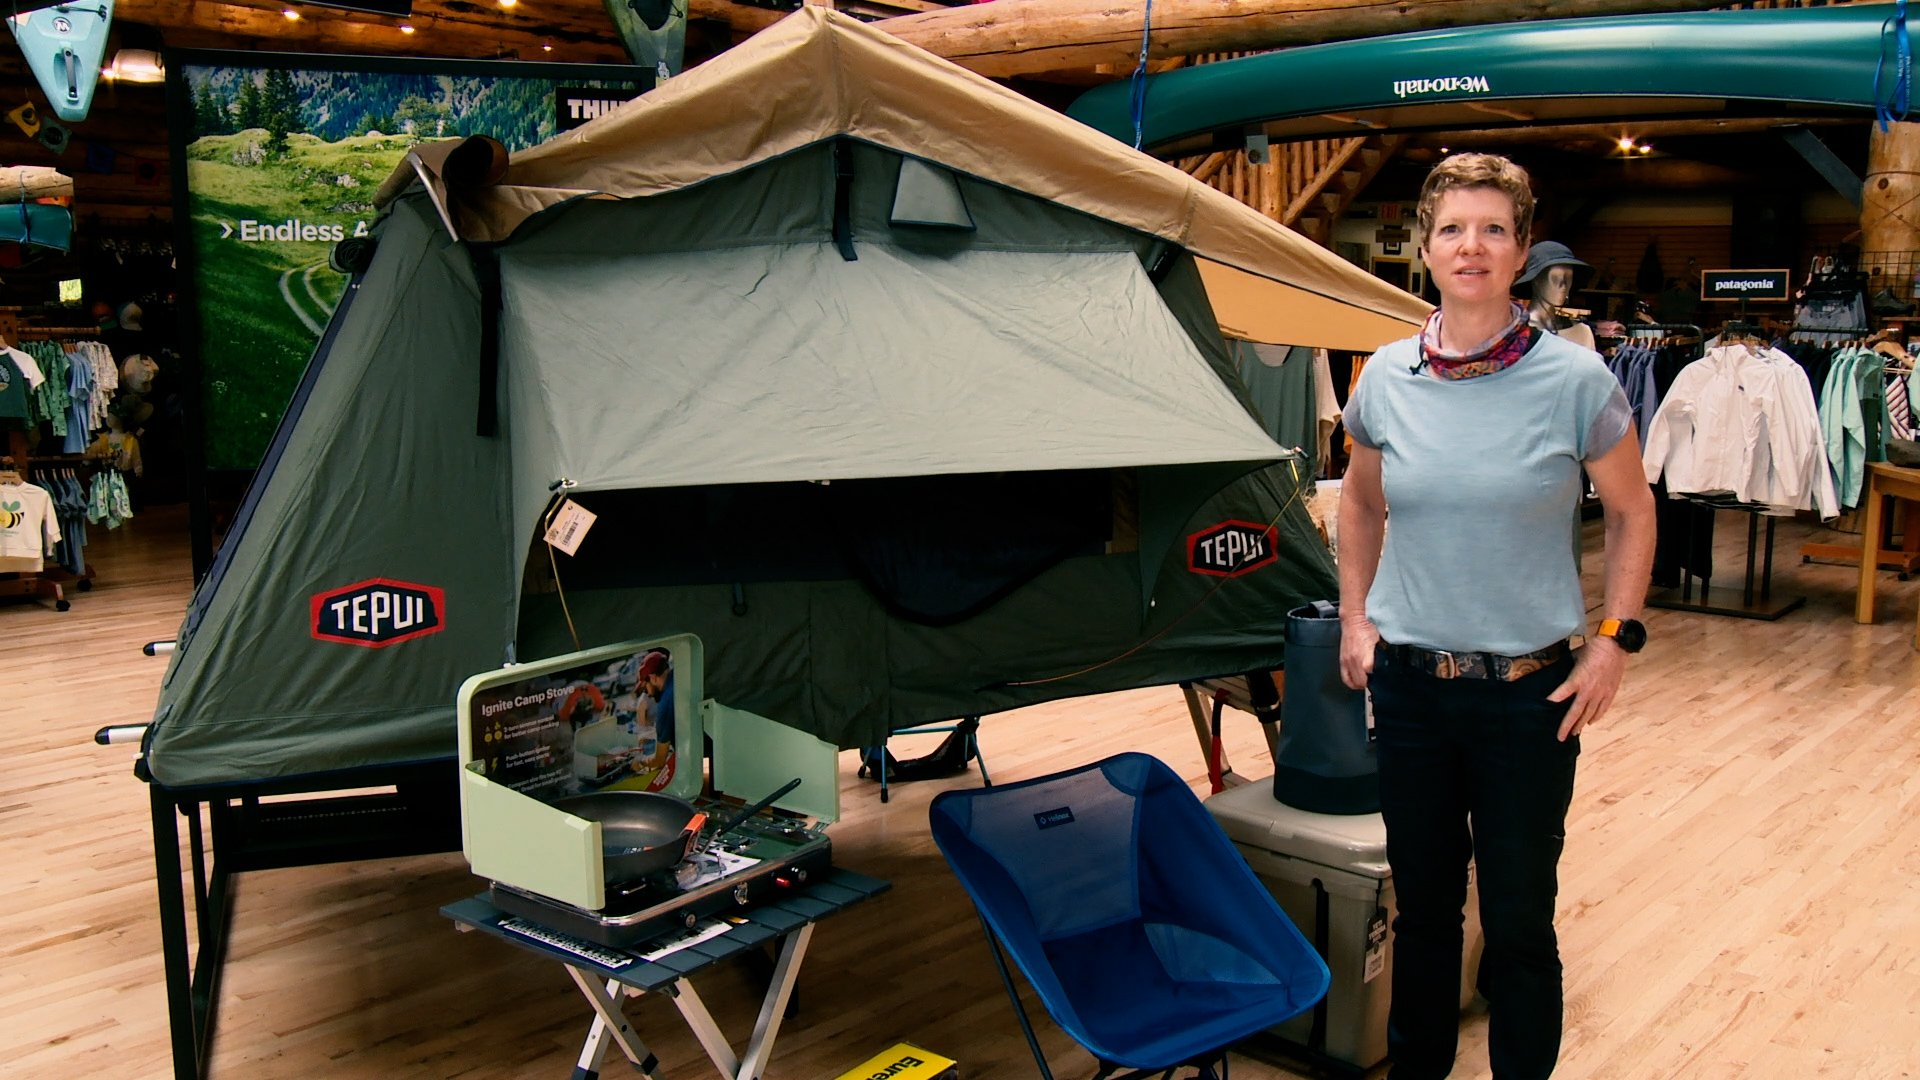 Woman in from of tent